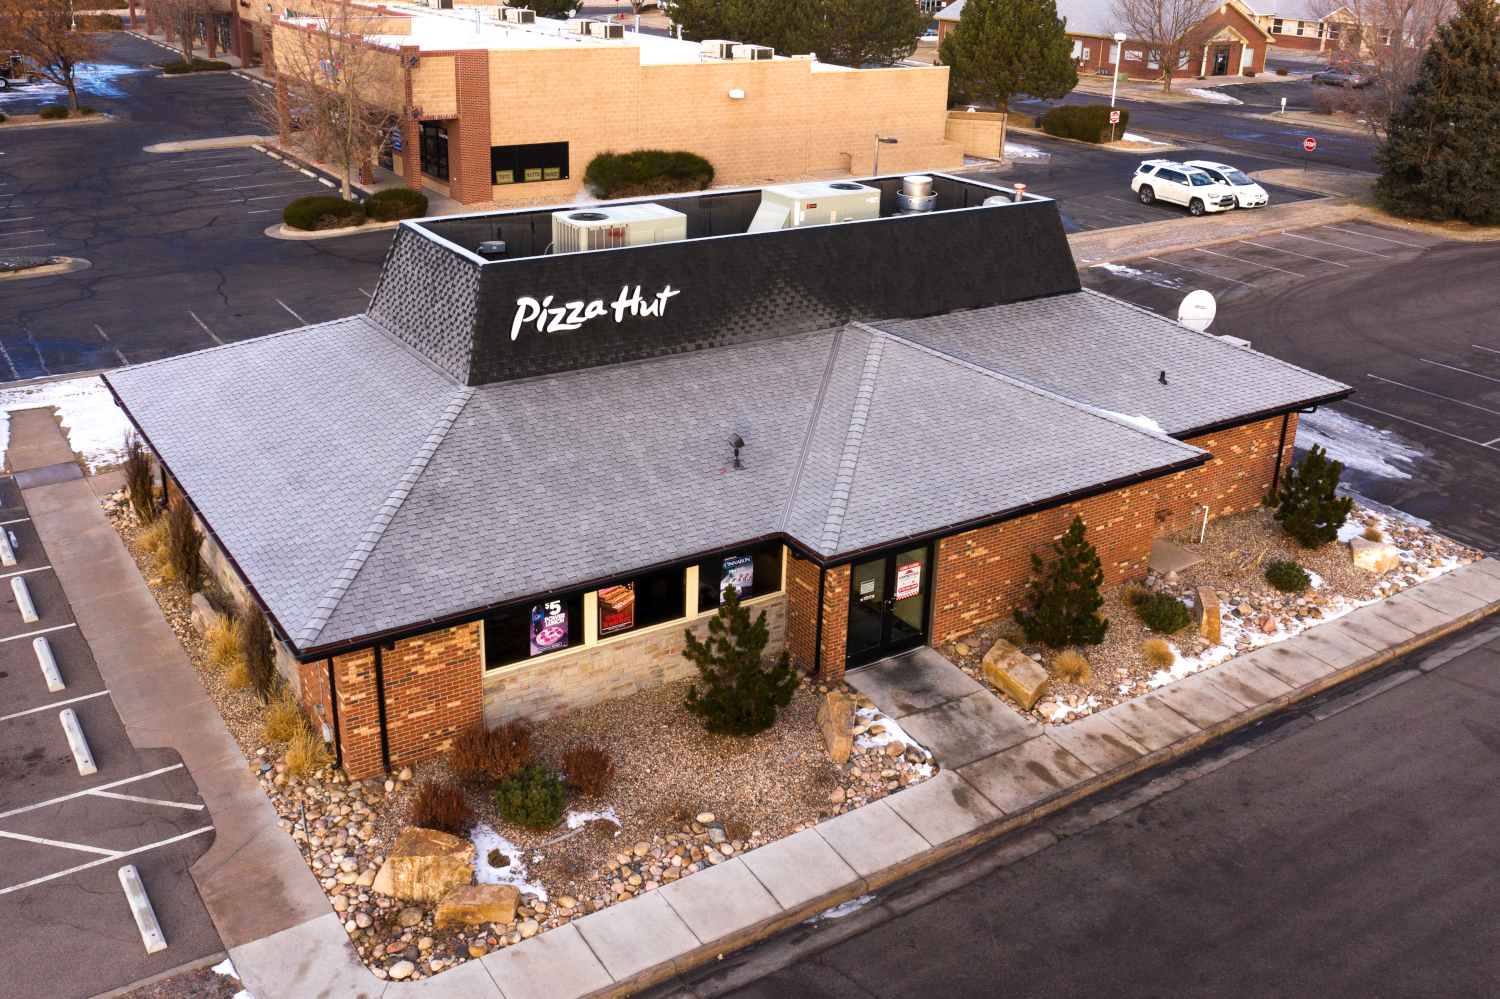 Commercial Reroof with gutters and downspouts using Class IV shingles.